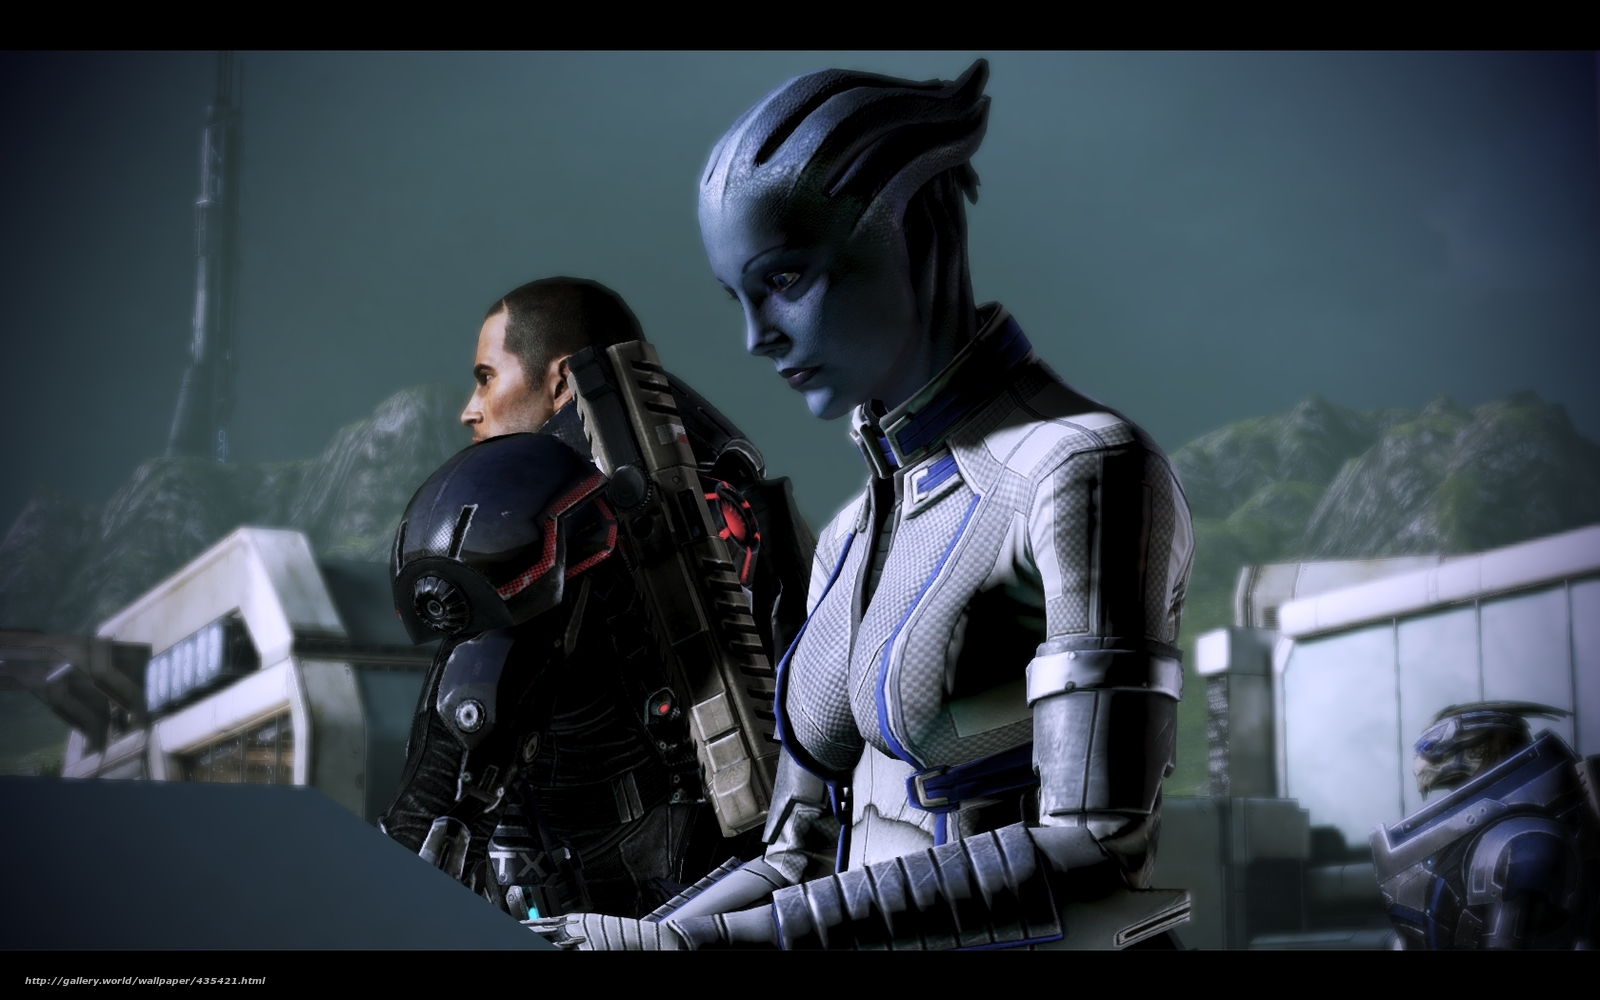 Mass effect liara nackt sexual images